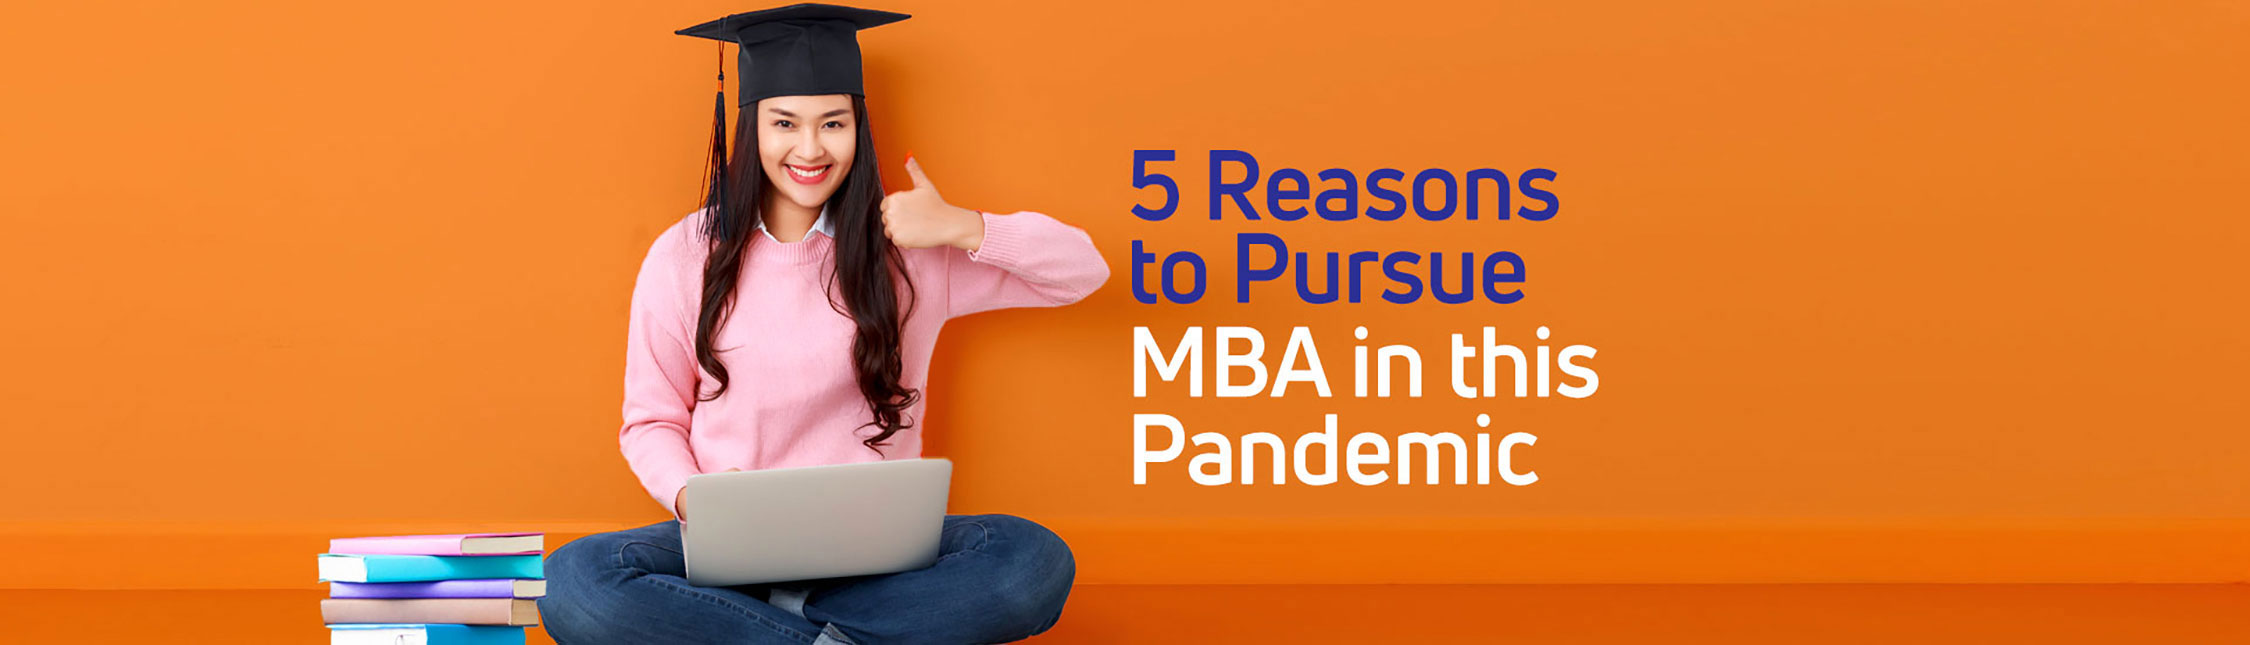 Reasons to Pursue MBA in this Pandemic